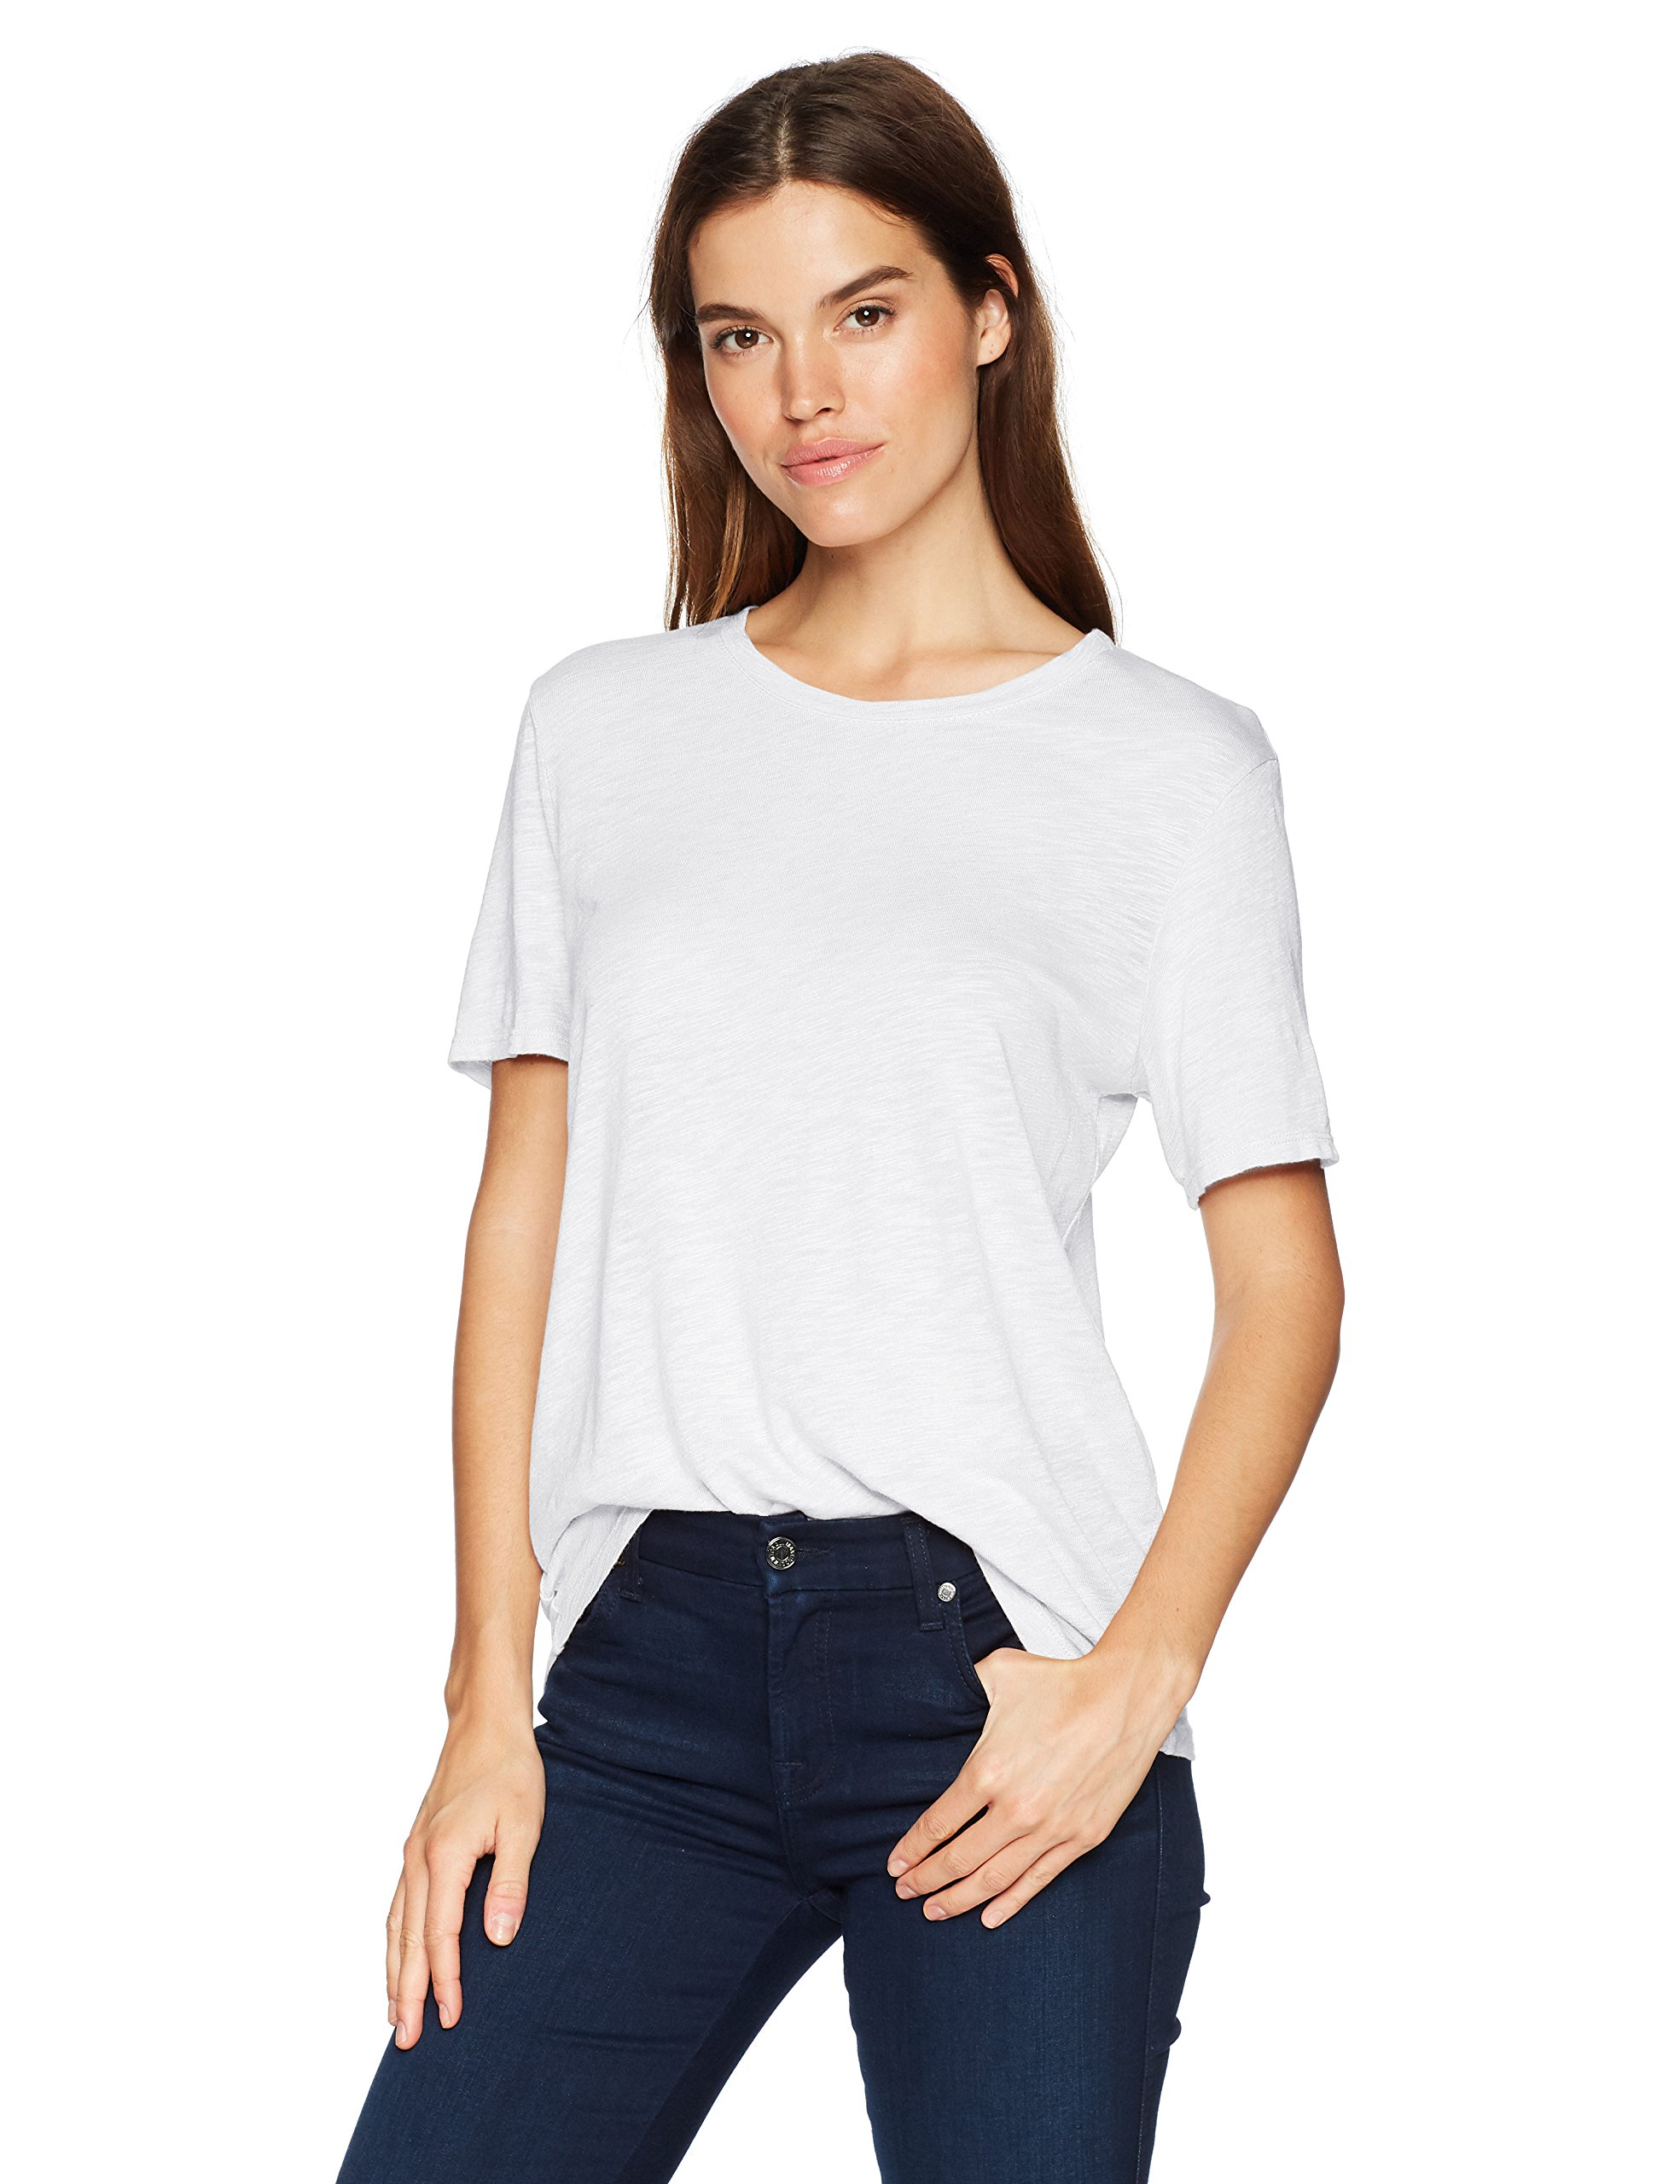 Splendid Women's Short Sleeve Crew Neck, White, S